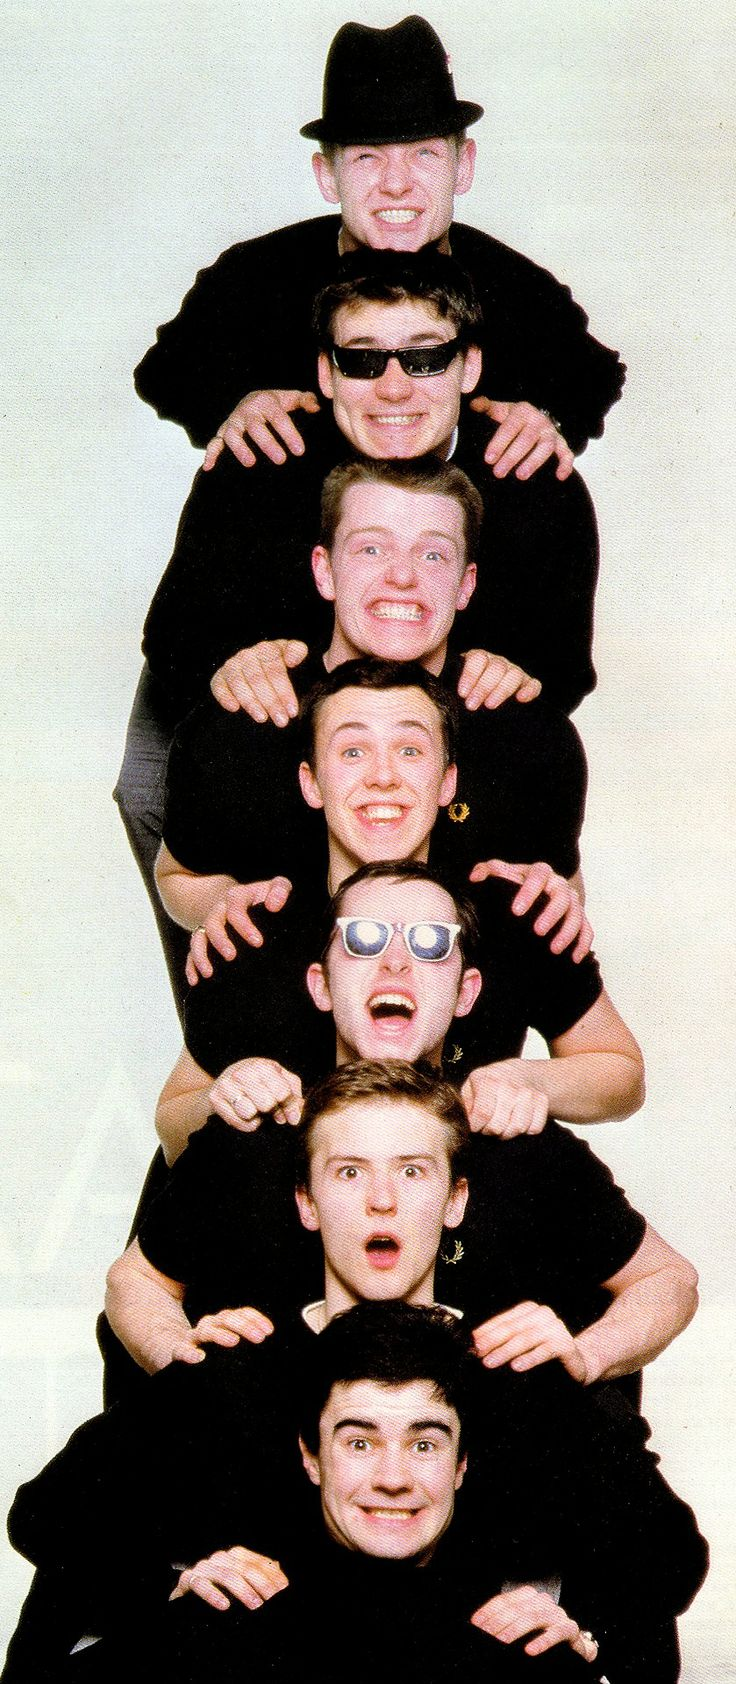 Madness House of Fun - Nutty Boys Band Slot